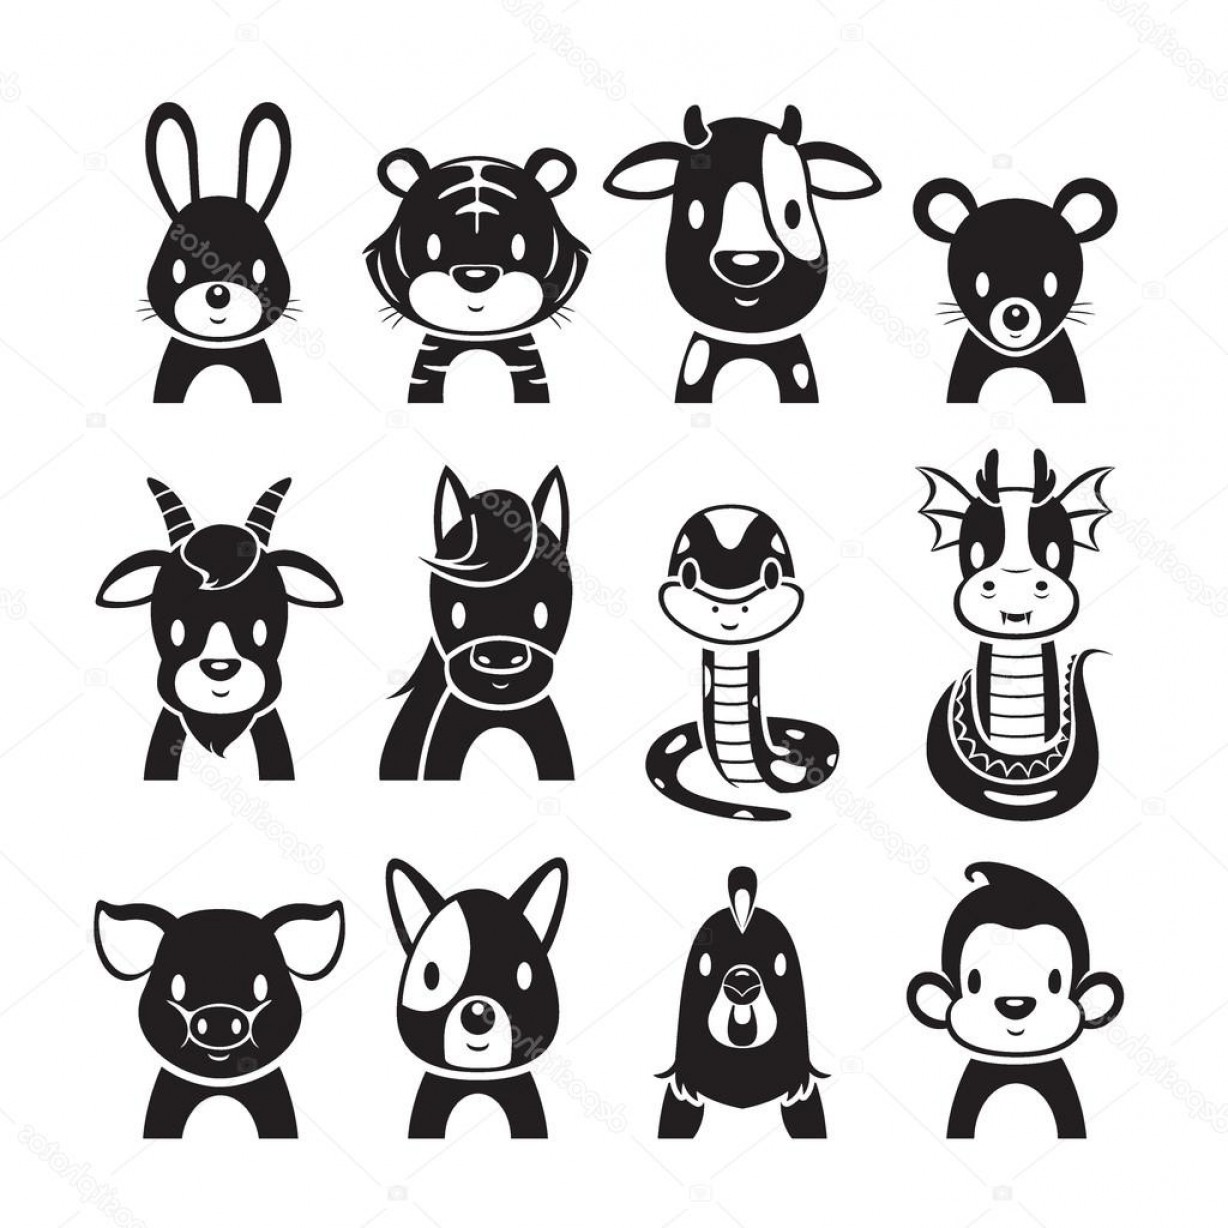 Chinese Zodiac Signs Vector: Stock Illustration Animals Chinese Zodiac Signs